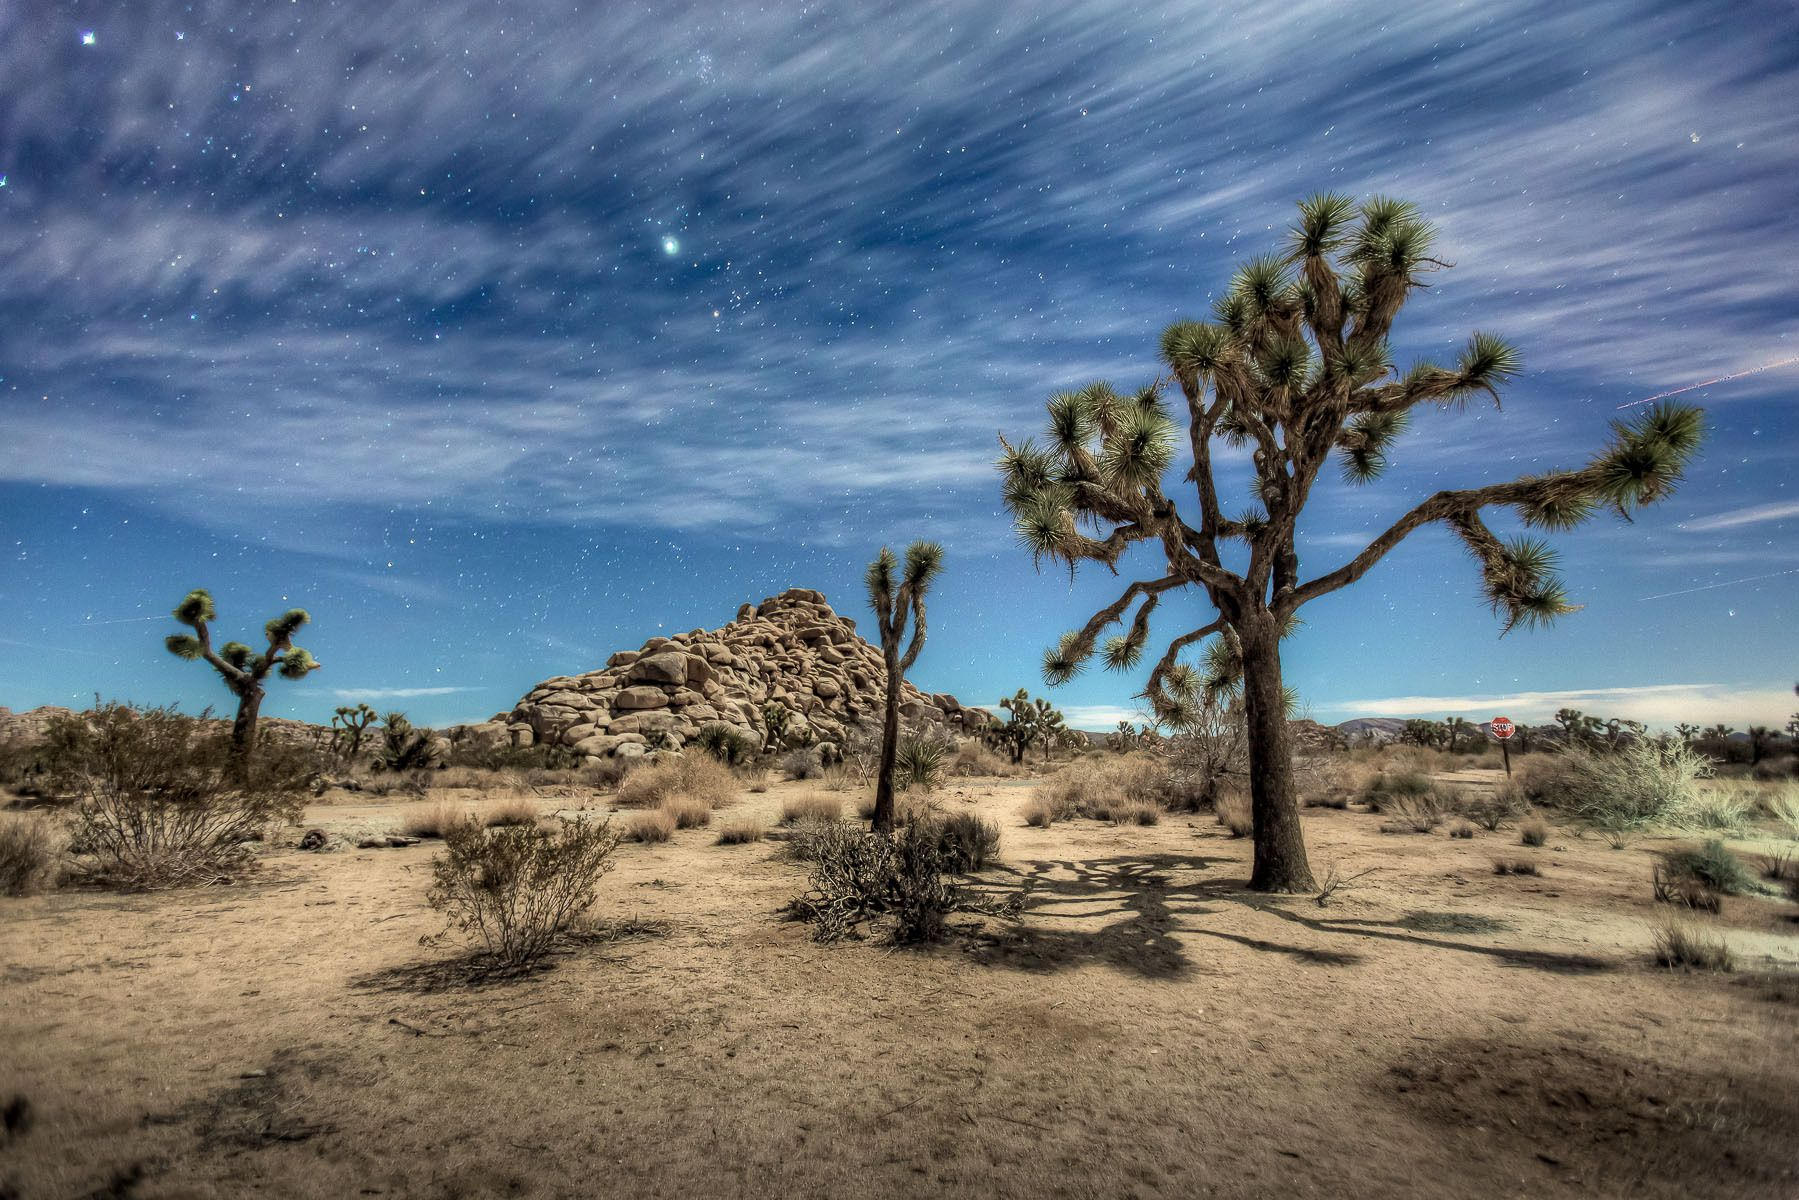 Joshua Tree by moonlight